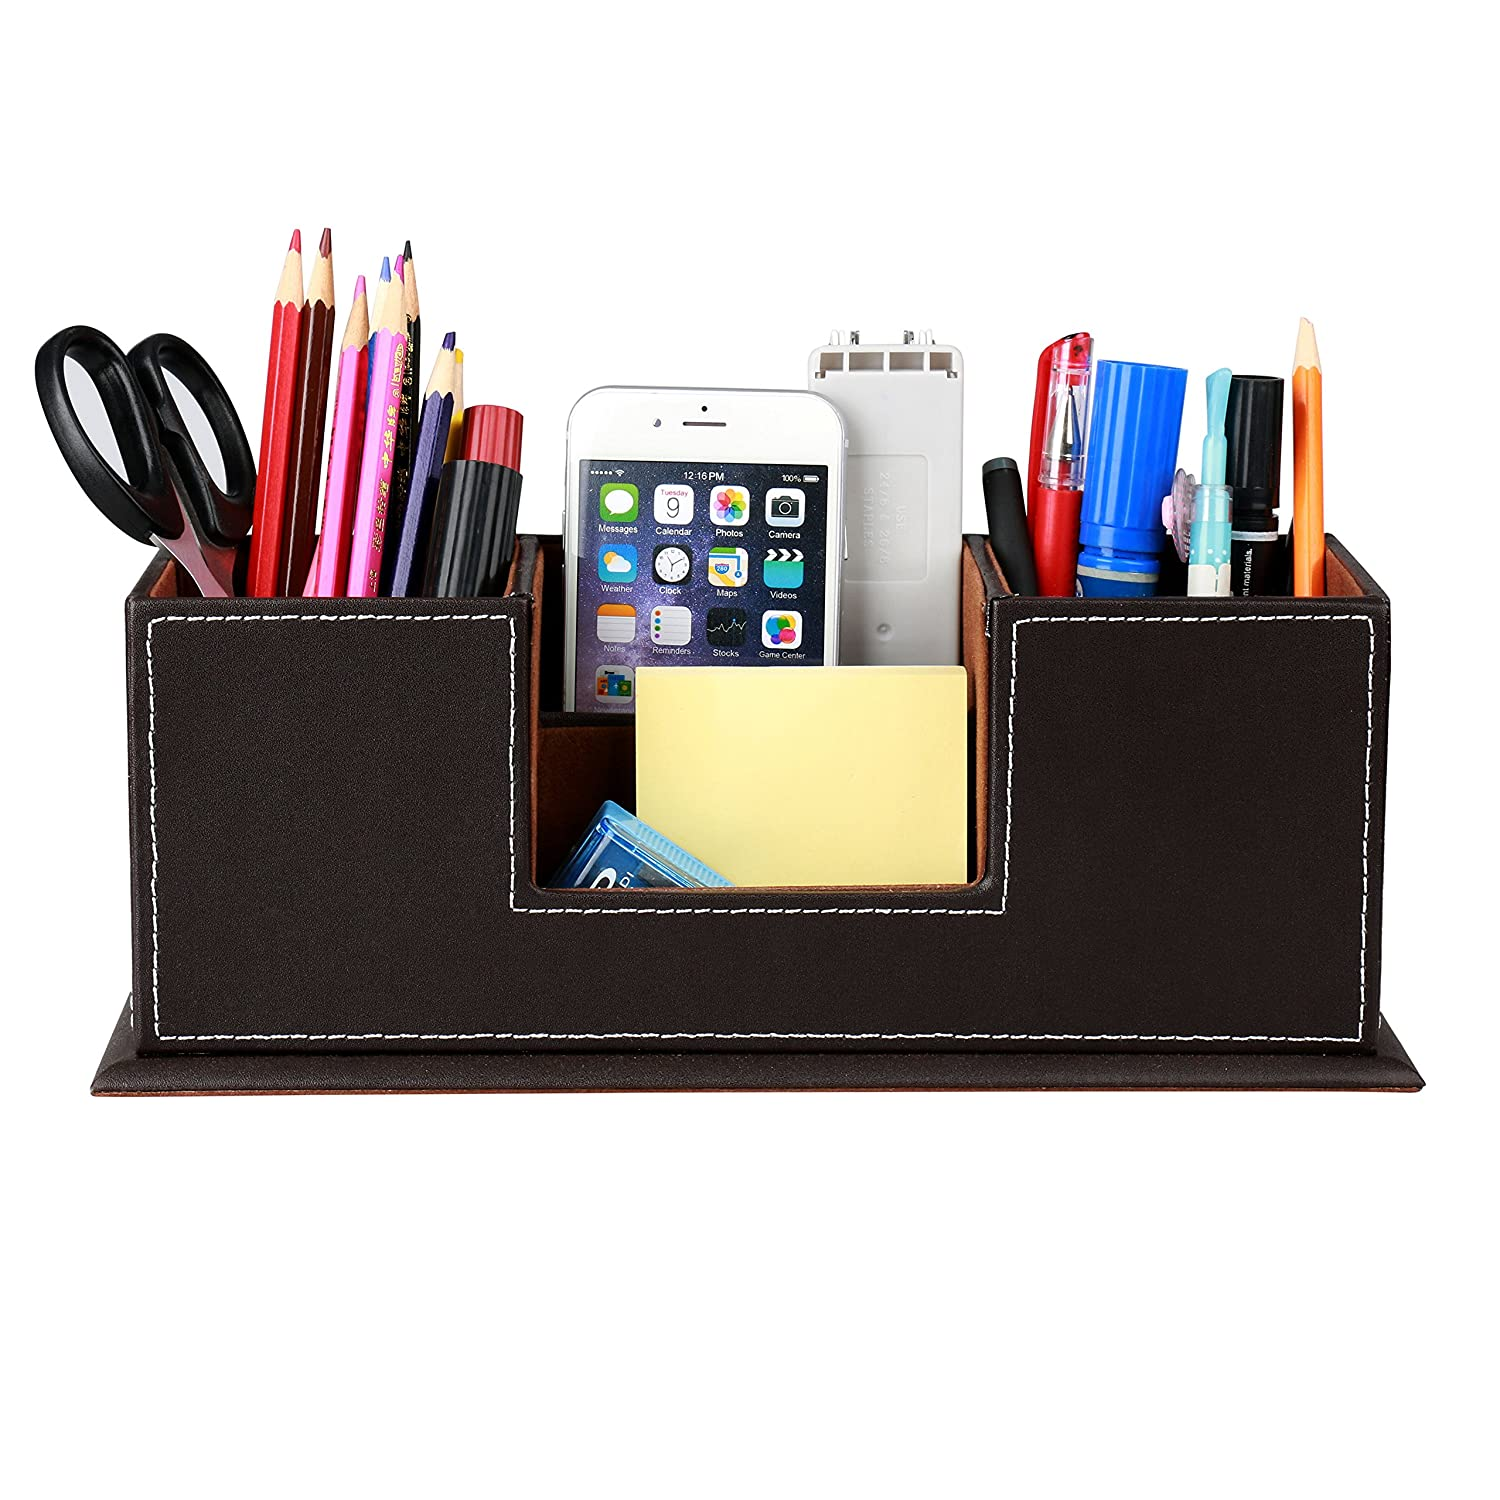 HOMETEK PU Leather Desktop Storage Box 4 Compartment Desk Organizer  Card/Pen/Pencil/Mobile Phone/Remote Controller/Cosmetics Office Supplies  Holder ...